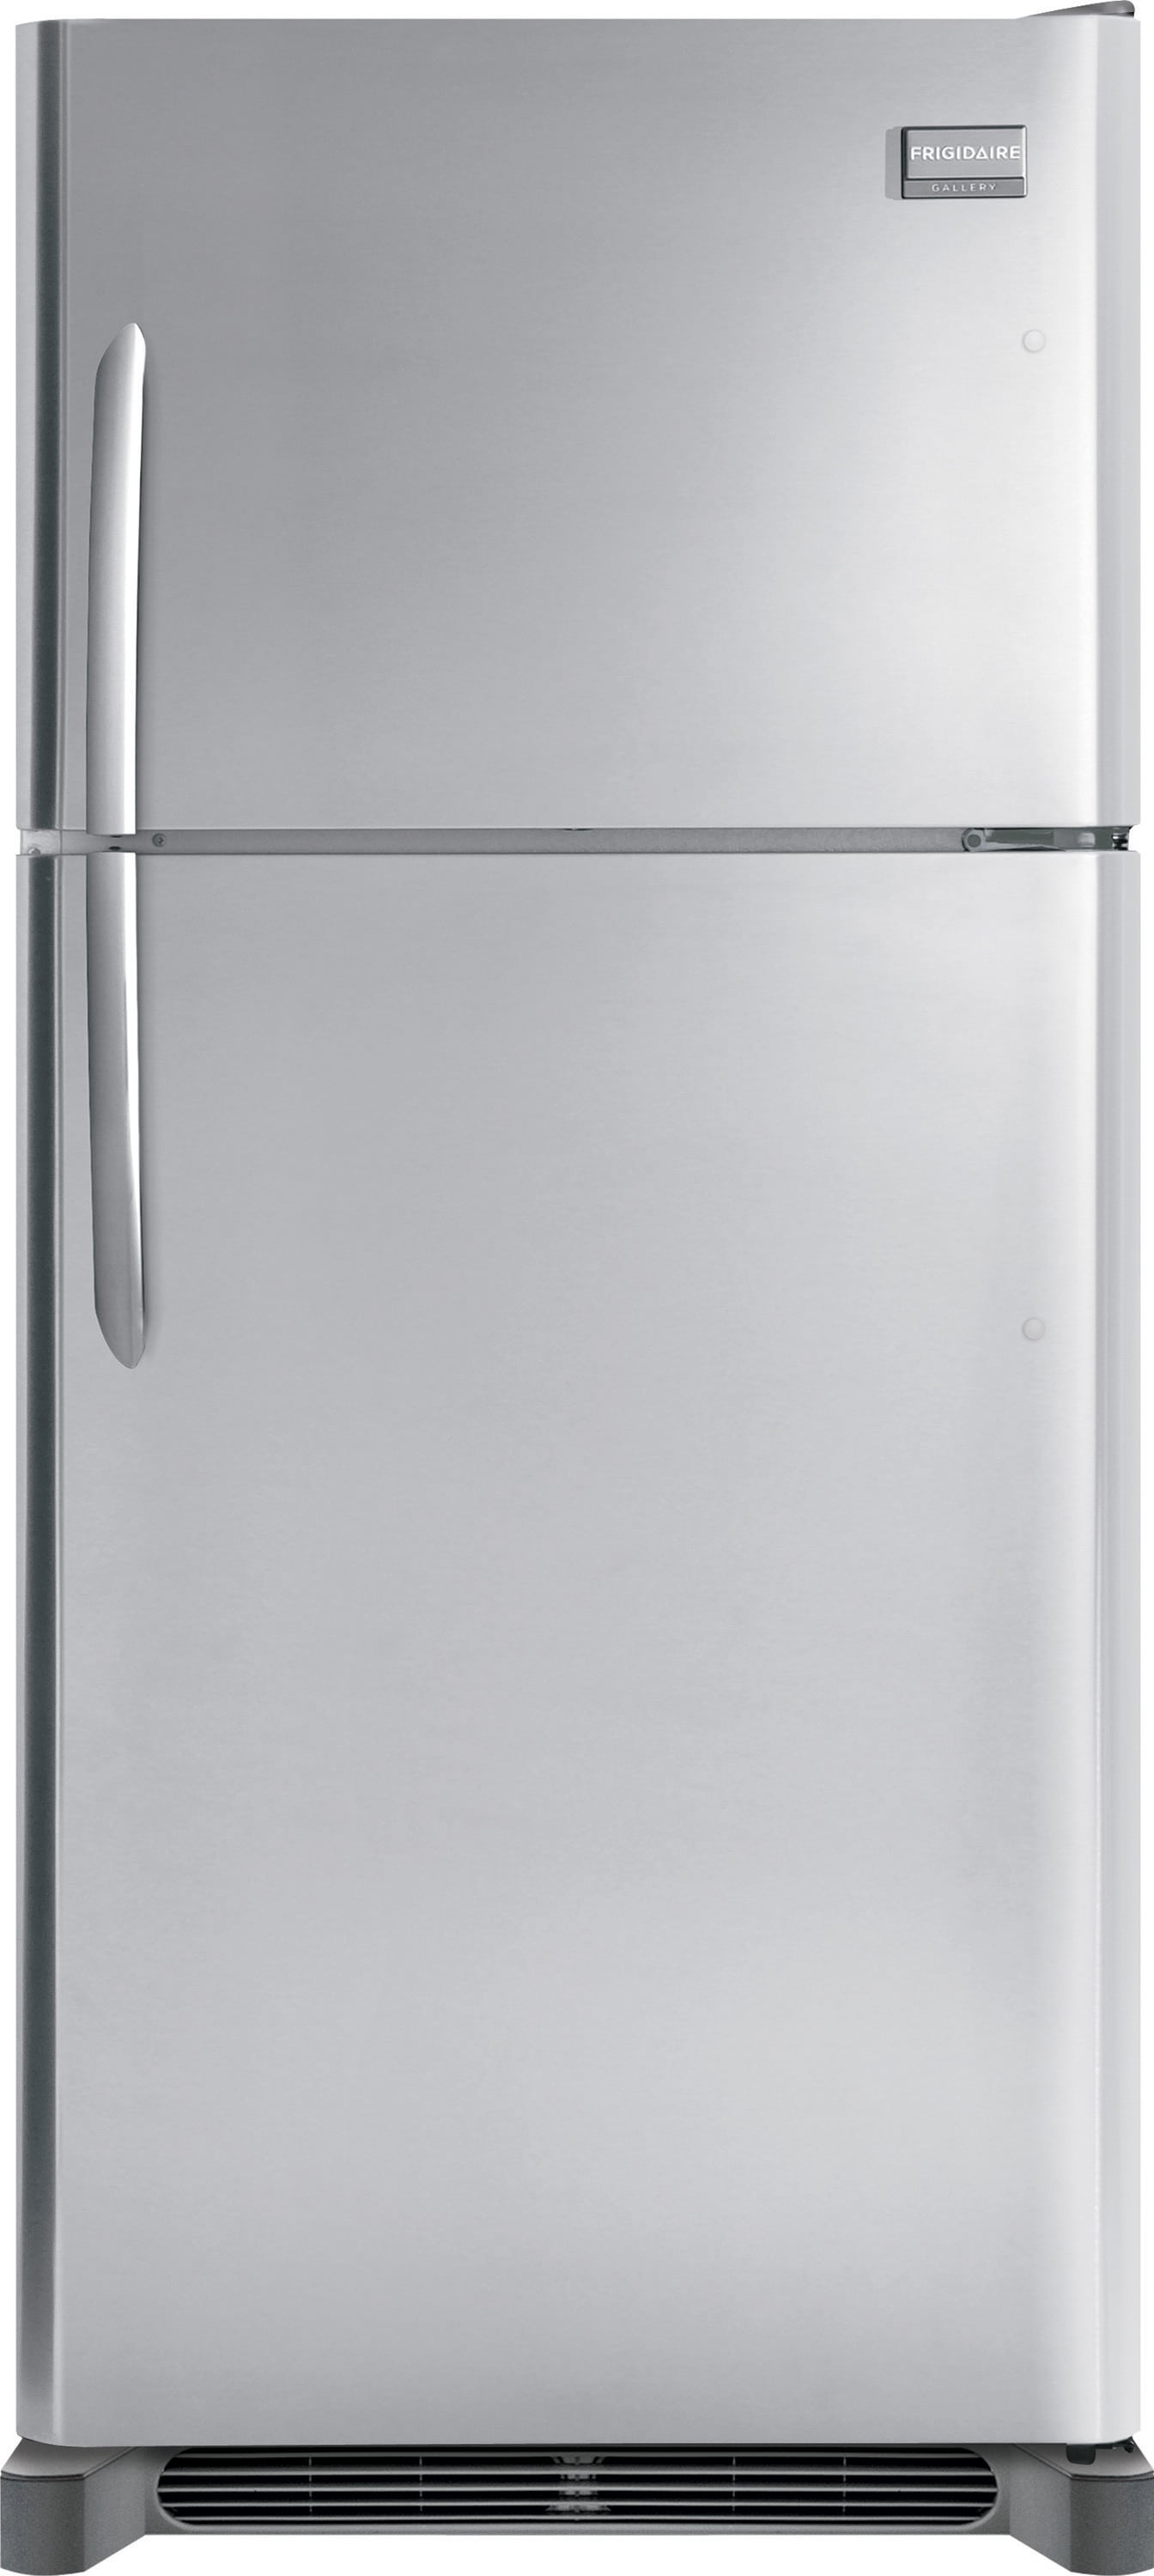 french door steel mr stainless galery frigidaire refrigerator products